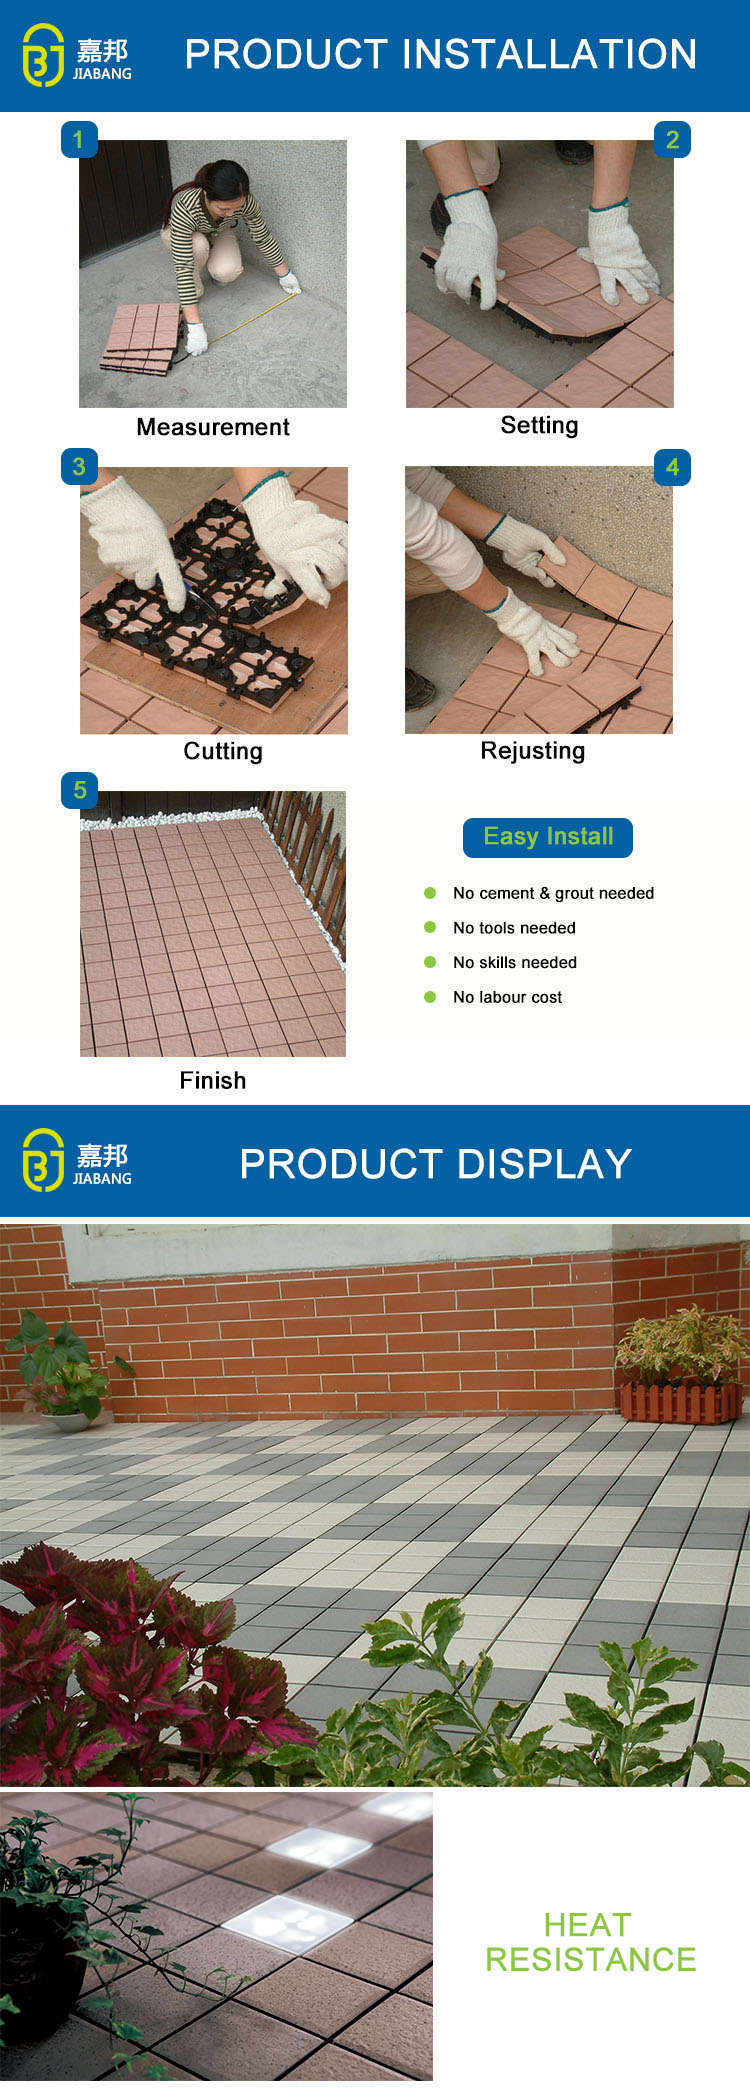 New model fire proof terracotta full body porcelain raised flooring new model fire proof terracotta full body porcelain raised flooring tiles system hot sale in nepal dailygadgetfo Gallery